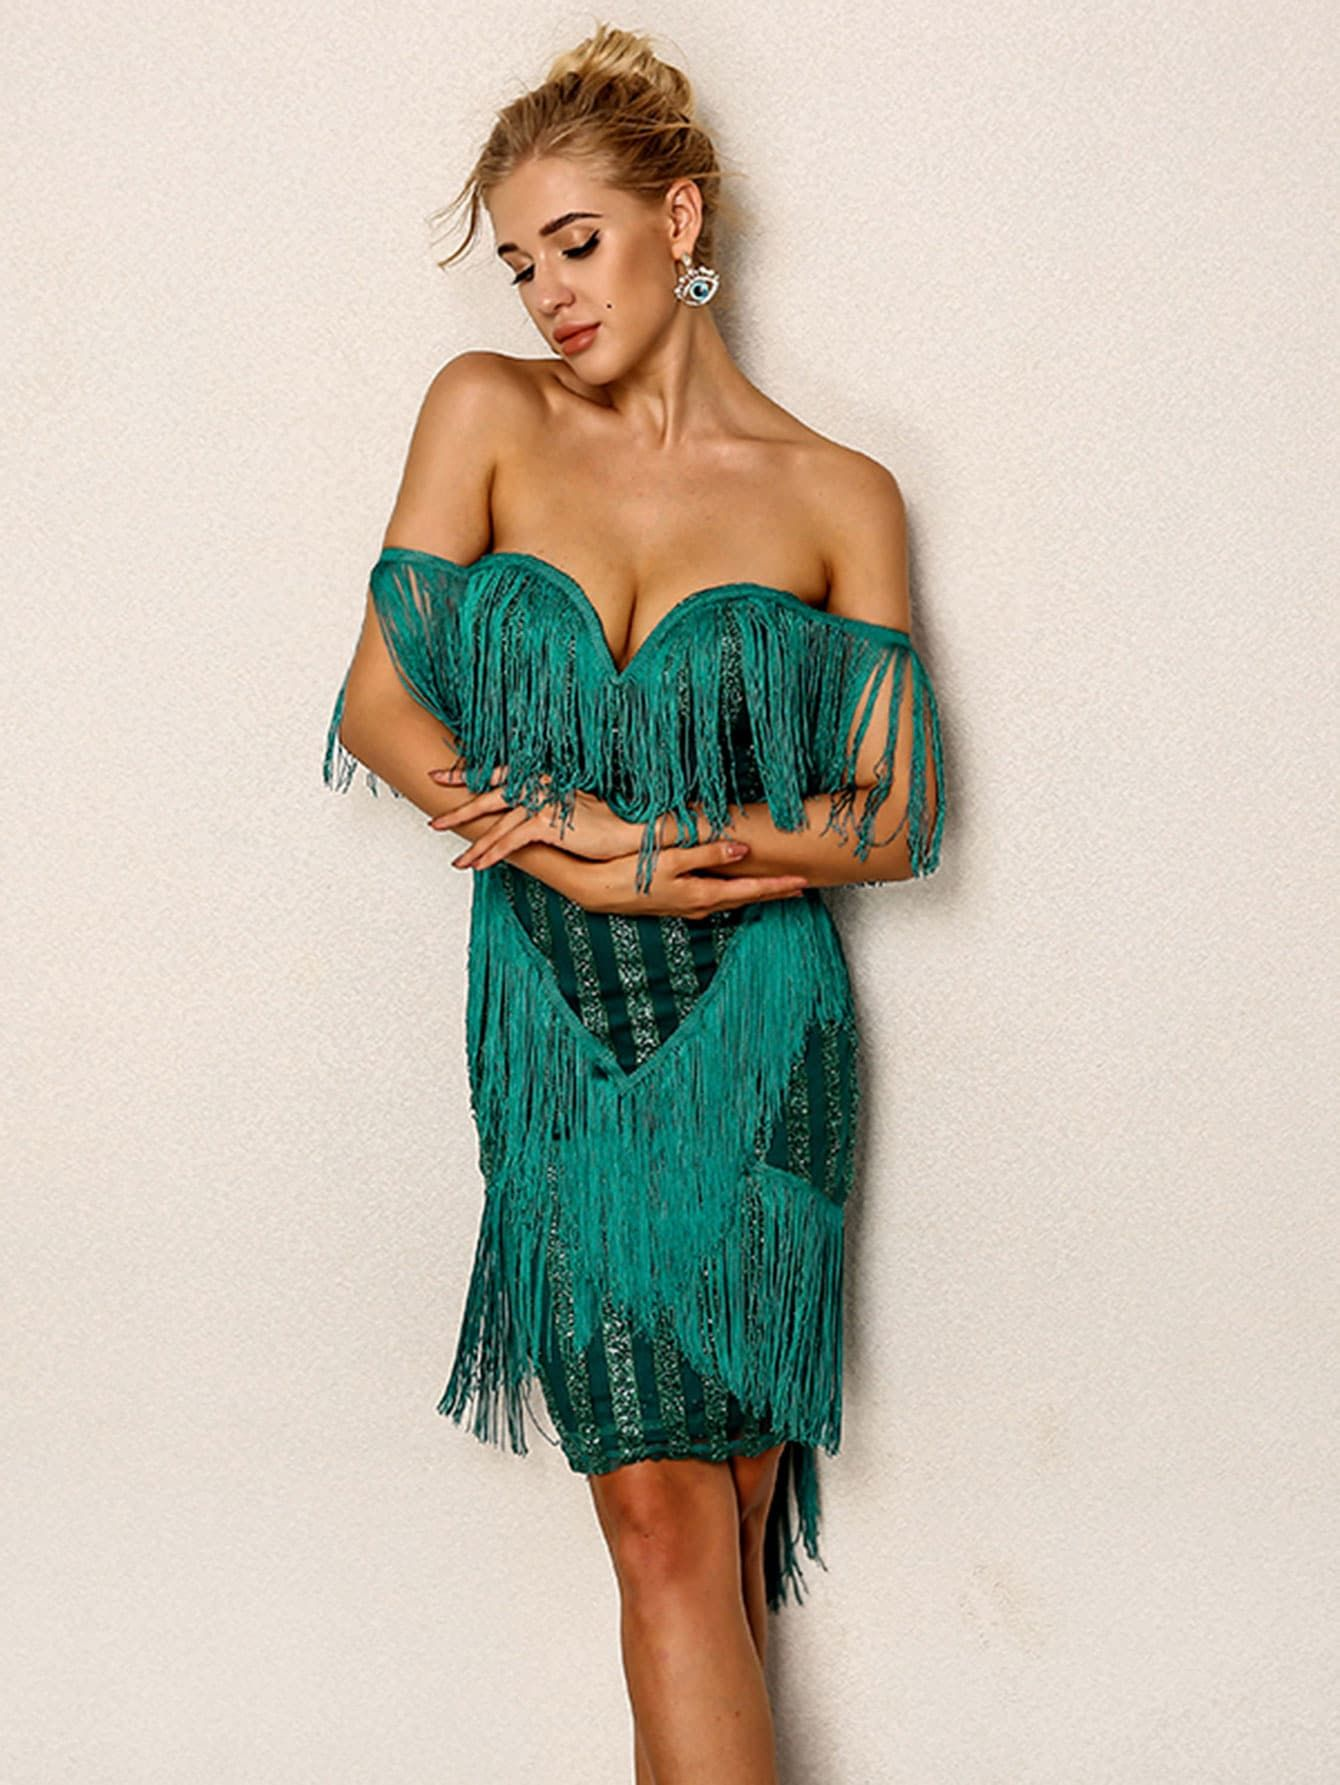 Sexy Zipper and Fringe and Contrast Sequin Bodycon Off the Shoulder  Sleeveless Natural Green Short Length Layered Fringe Embellished Off Shoulder  Dress 6529f5540